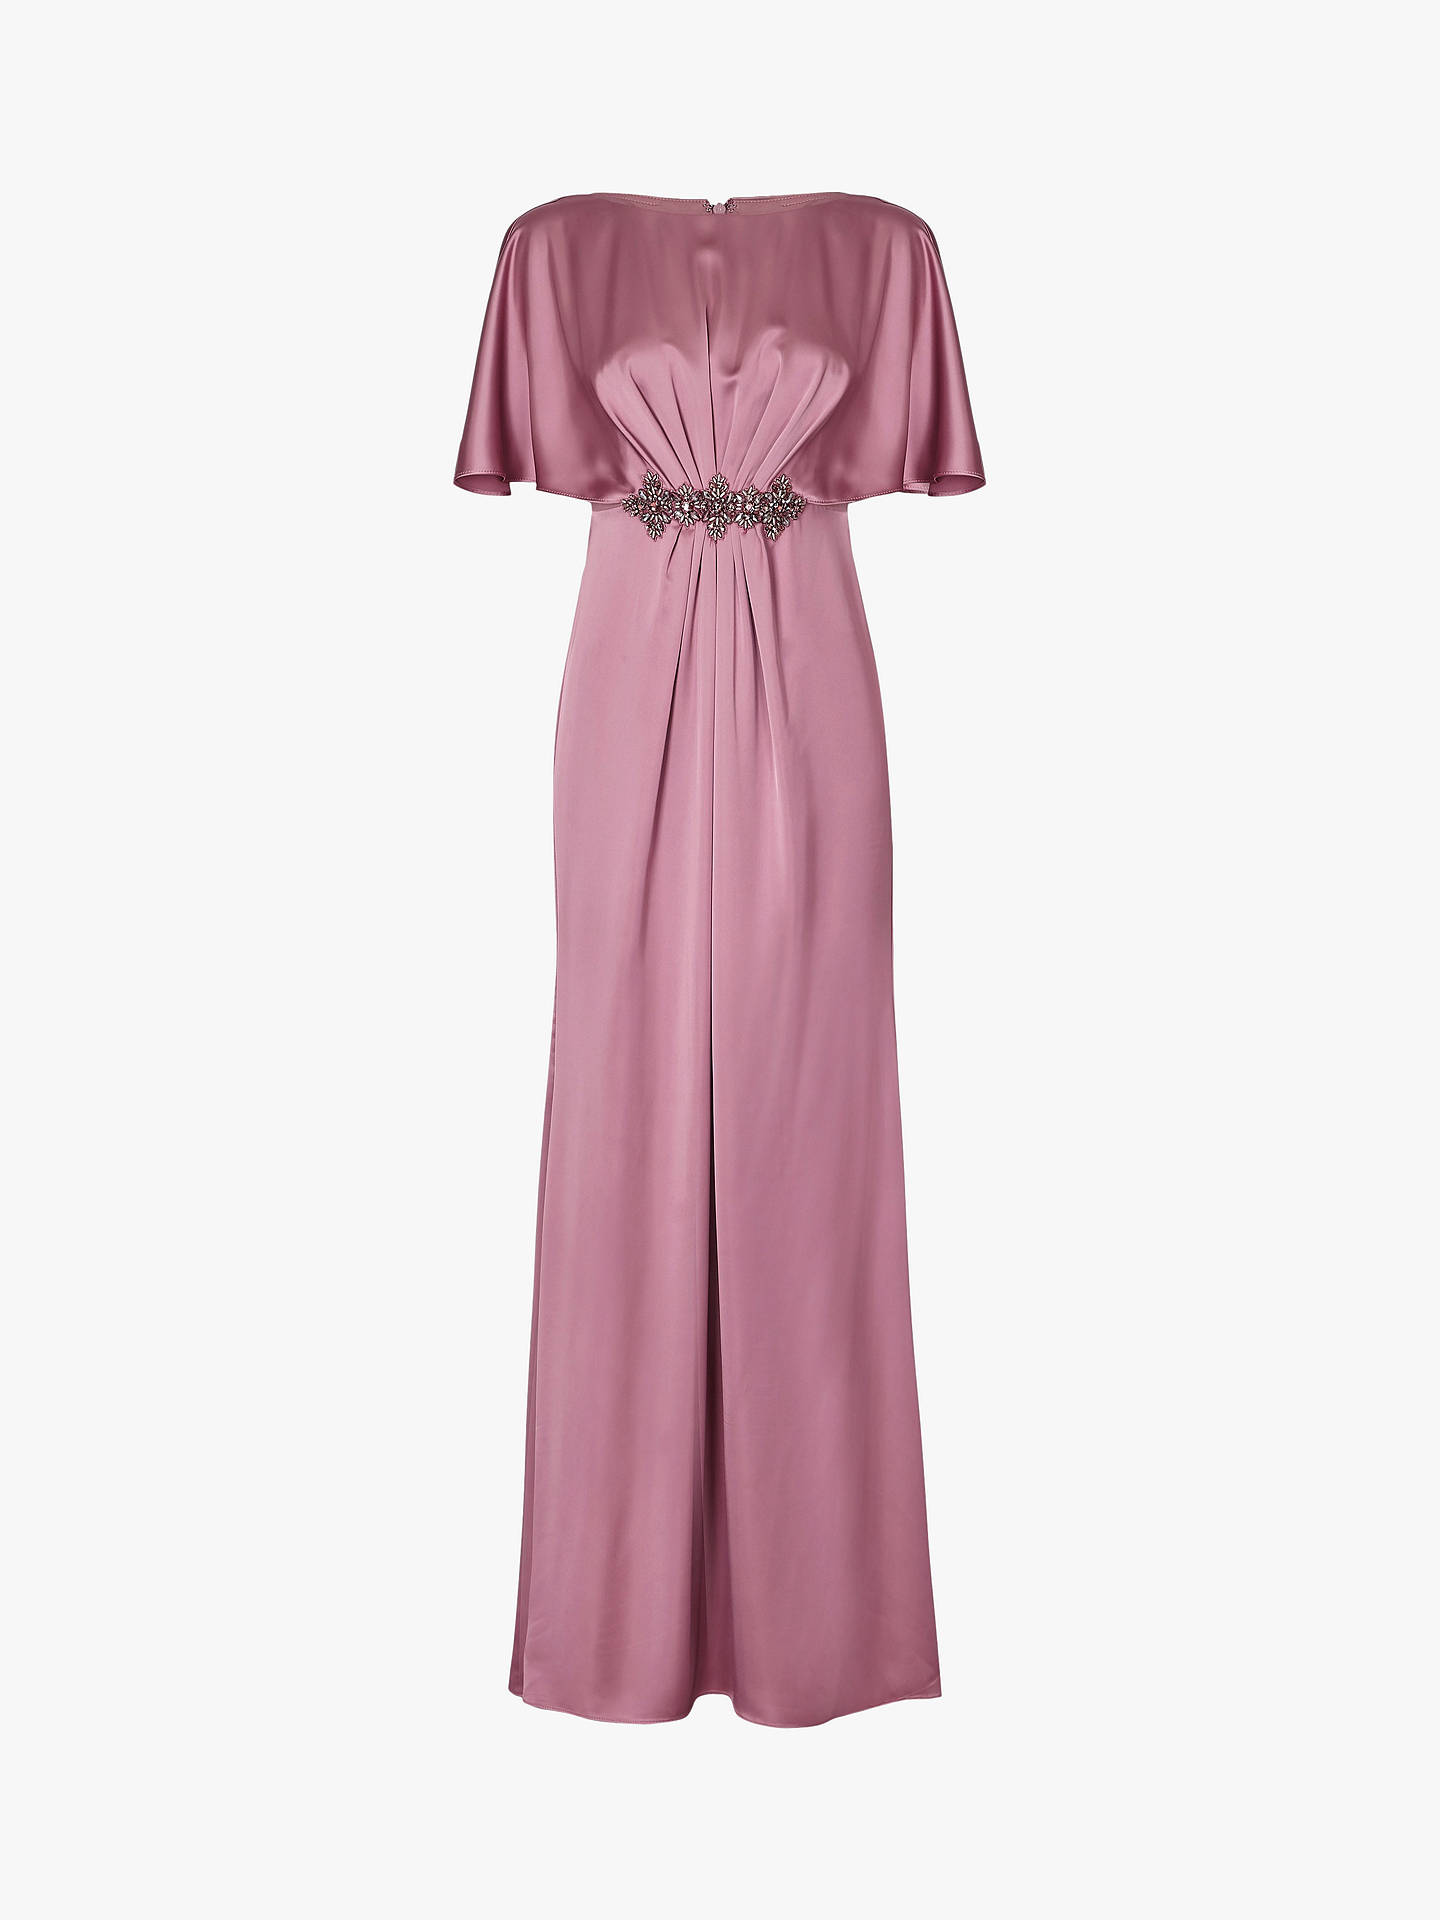 Buy Adrianna Papell Draped Cape Dress, Rose, 14 Online at johnlewis.com